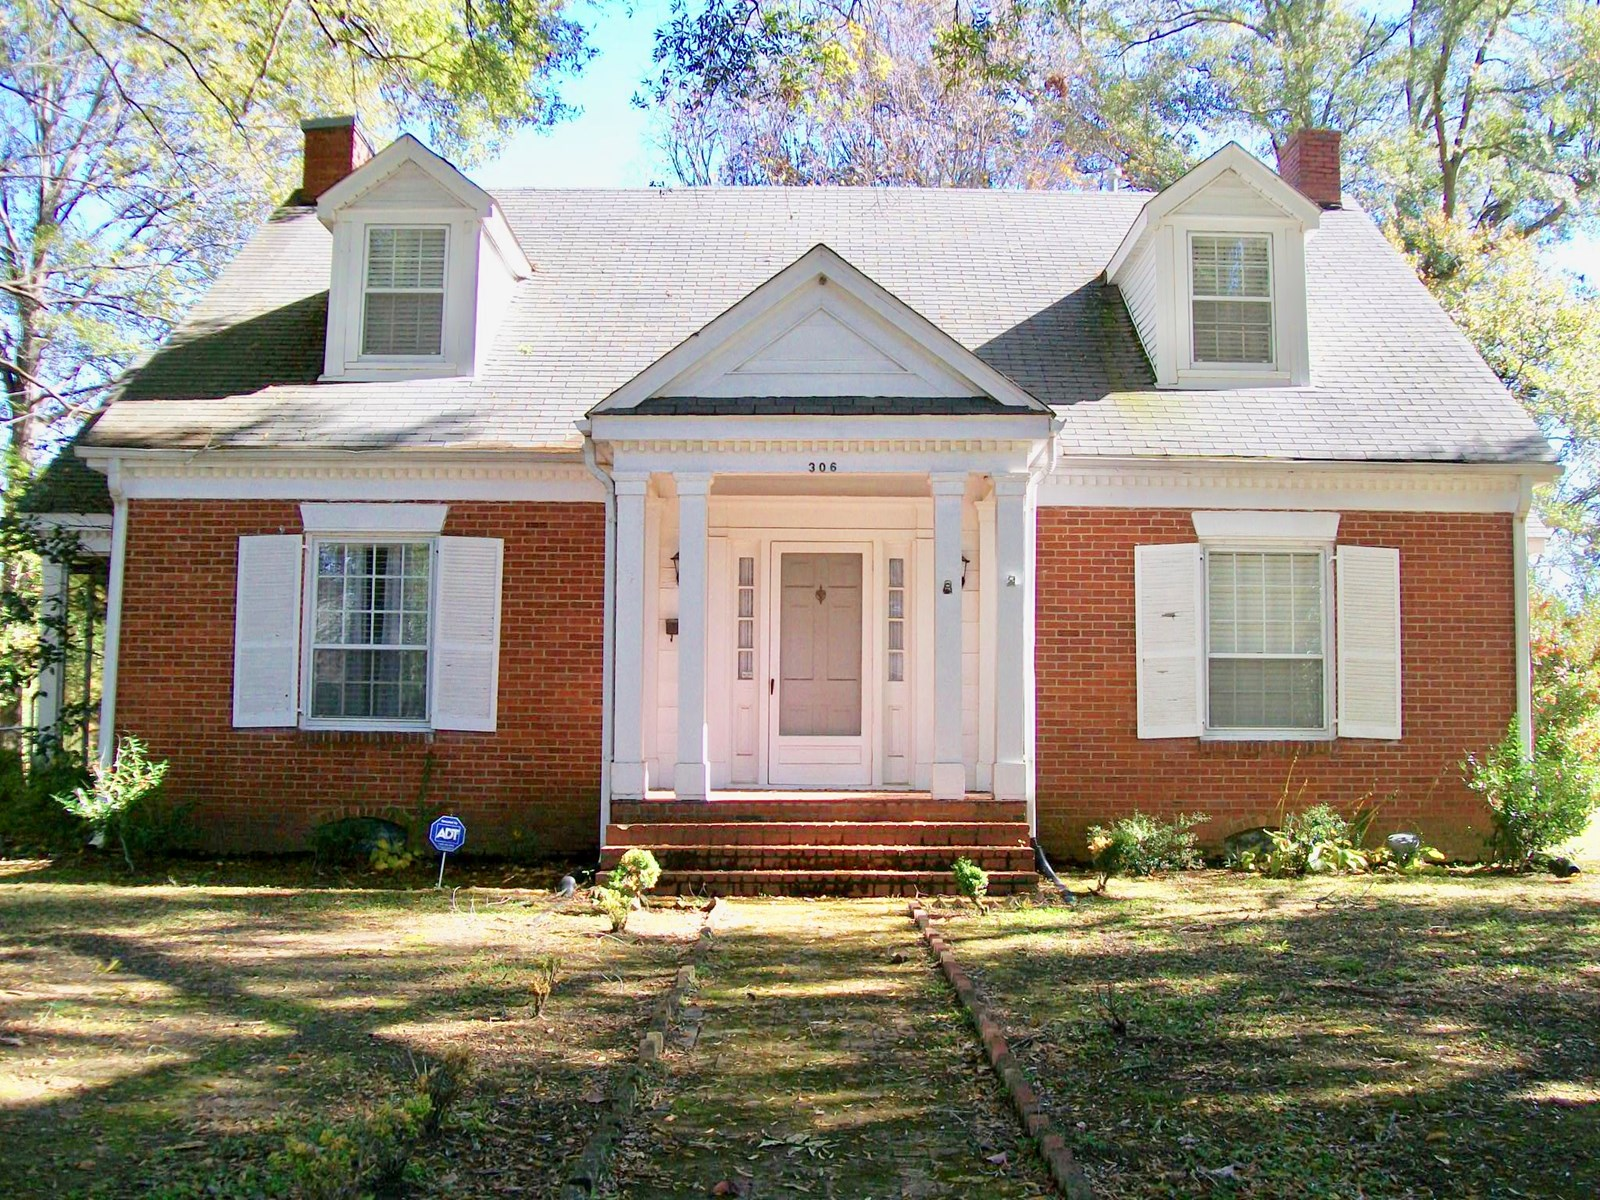 Charming Older Home for sale in Bolivar, TN